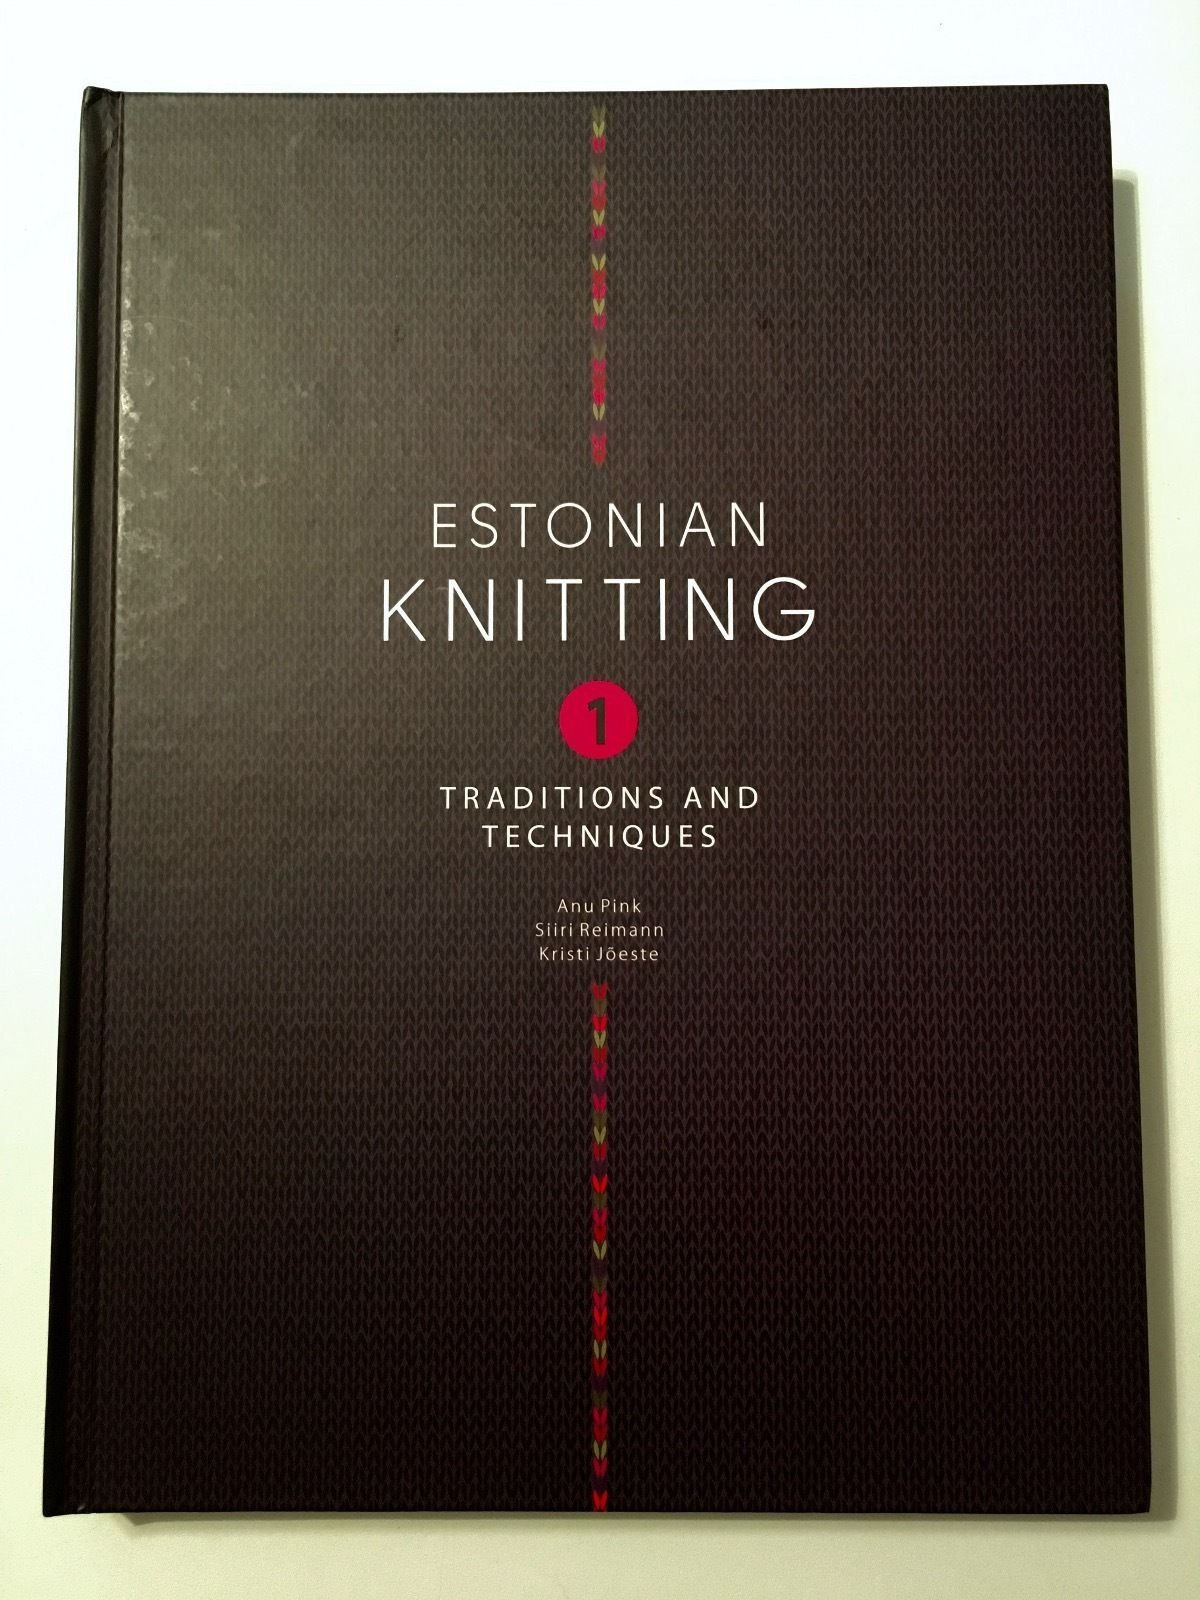 Estonian Knitting 1. Tradition and Techniques